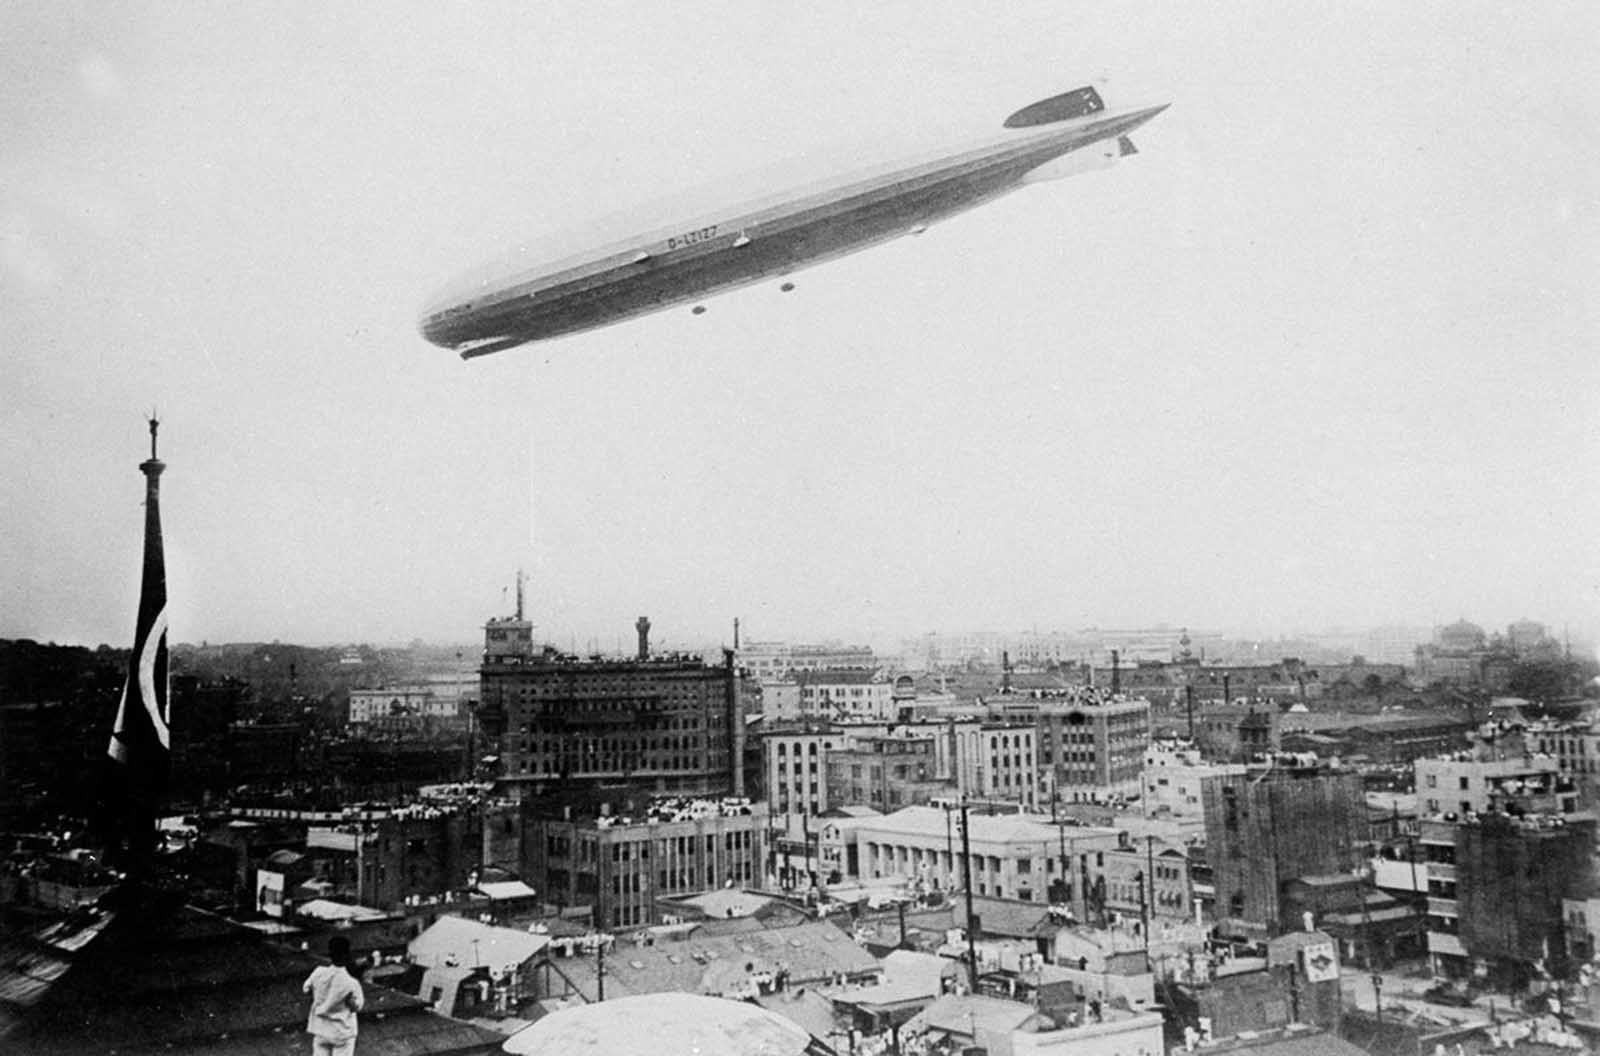 The Graf Zeppelin flies low over Tokyo before proceeding to Kasumigaura Airport on its around-the-world flight, on August 19, 1929.